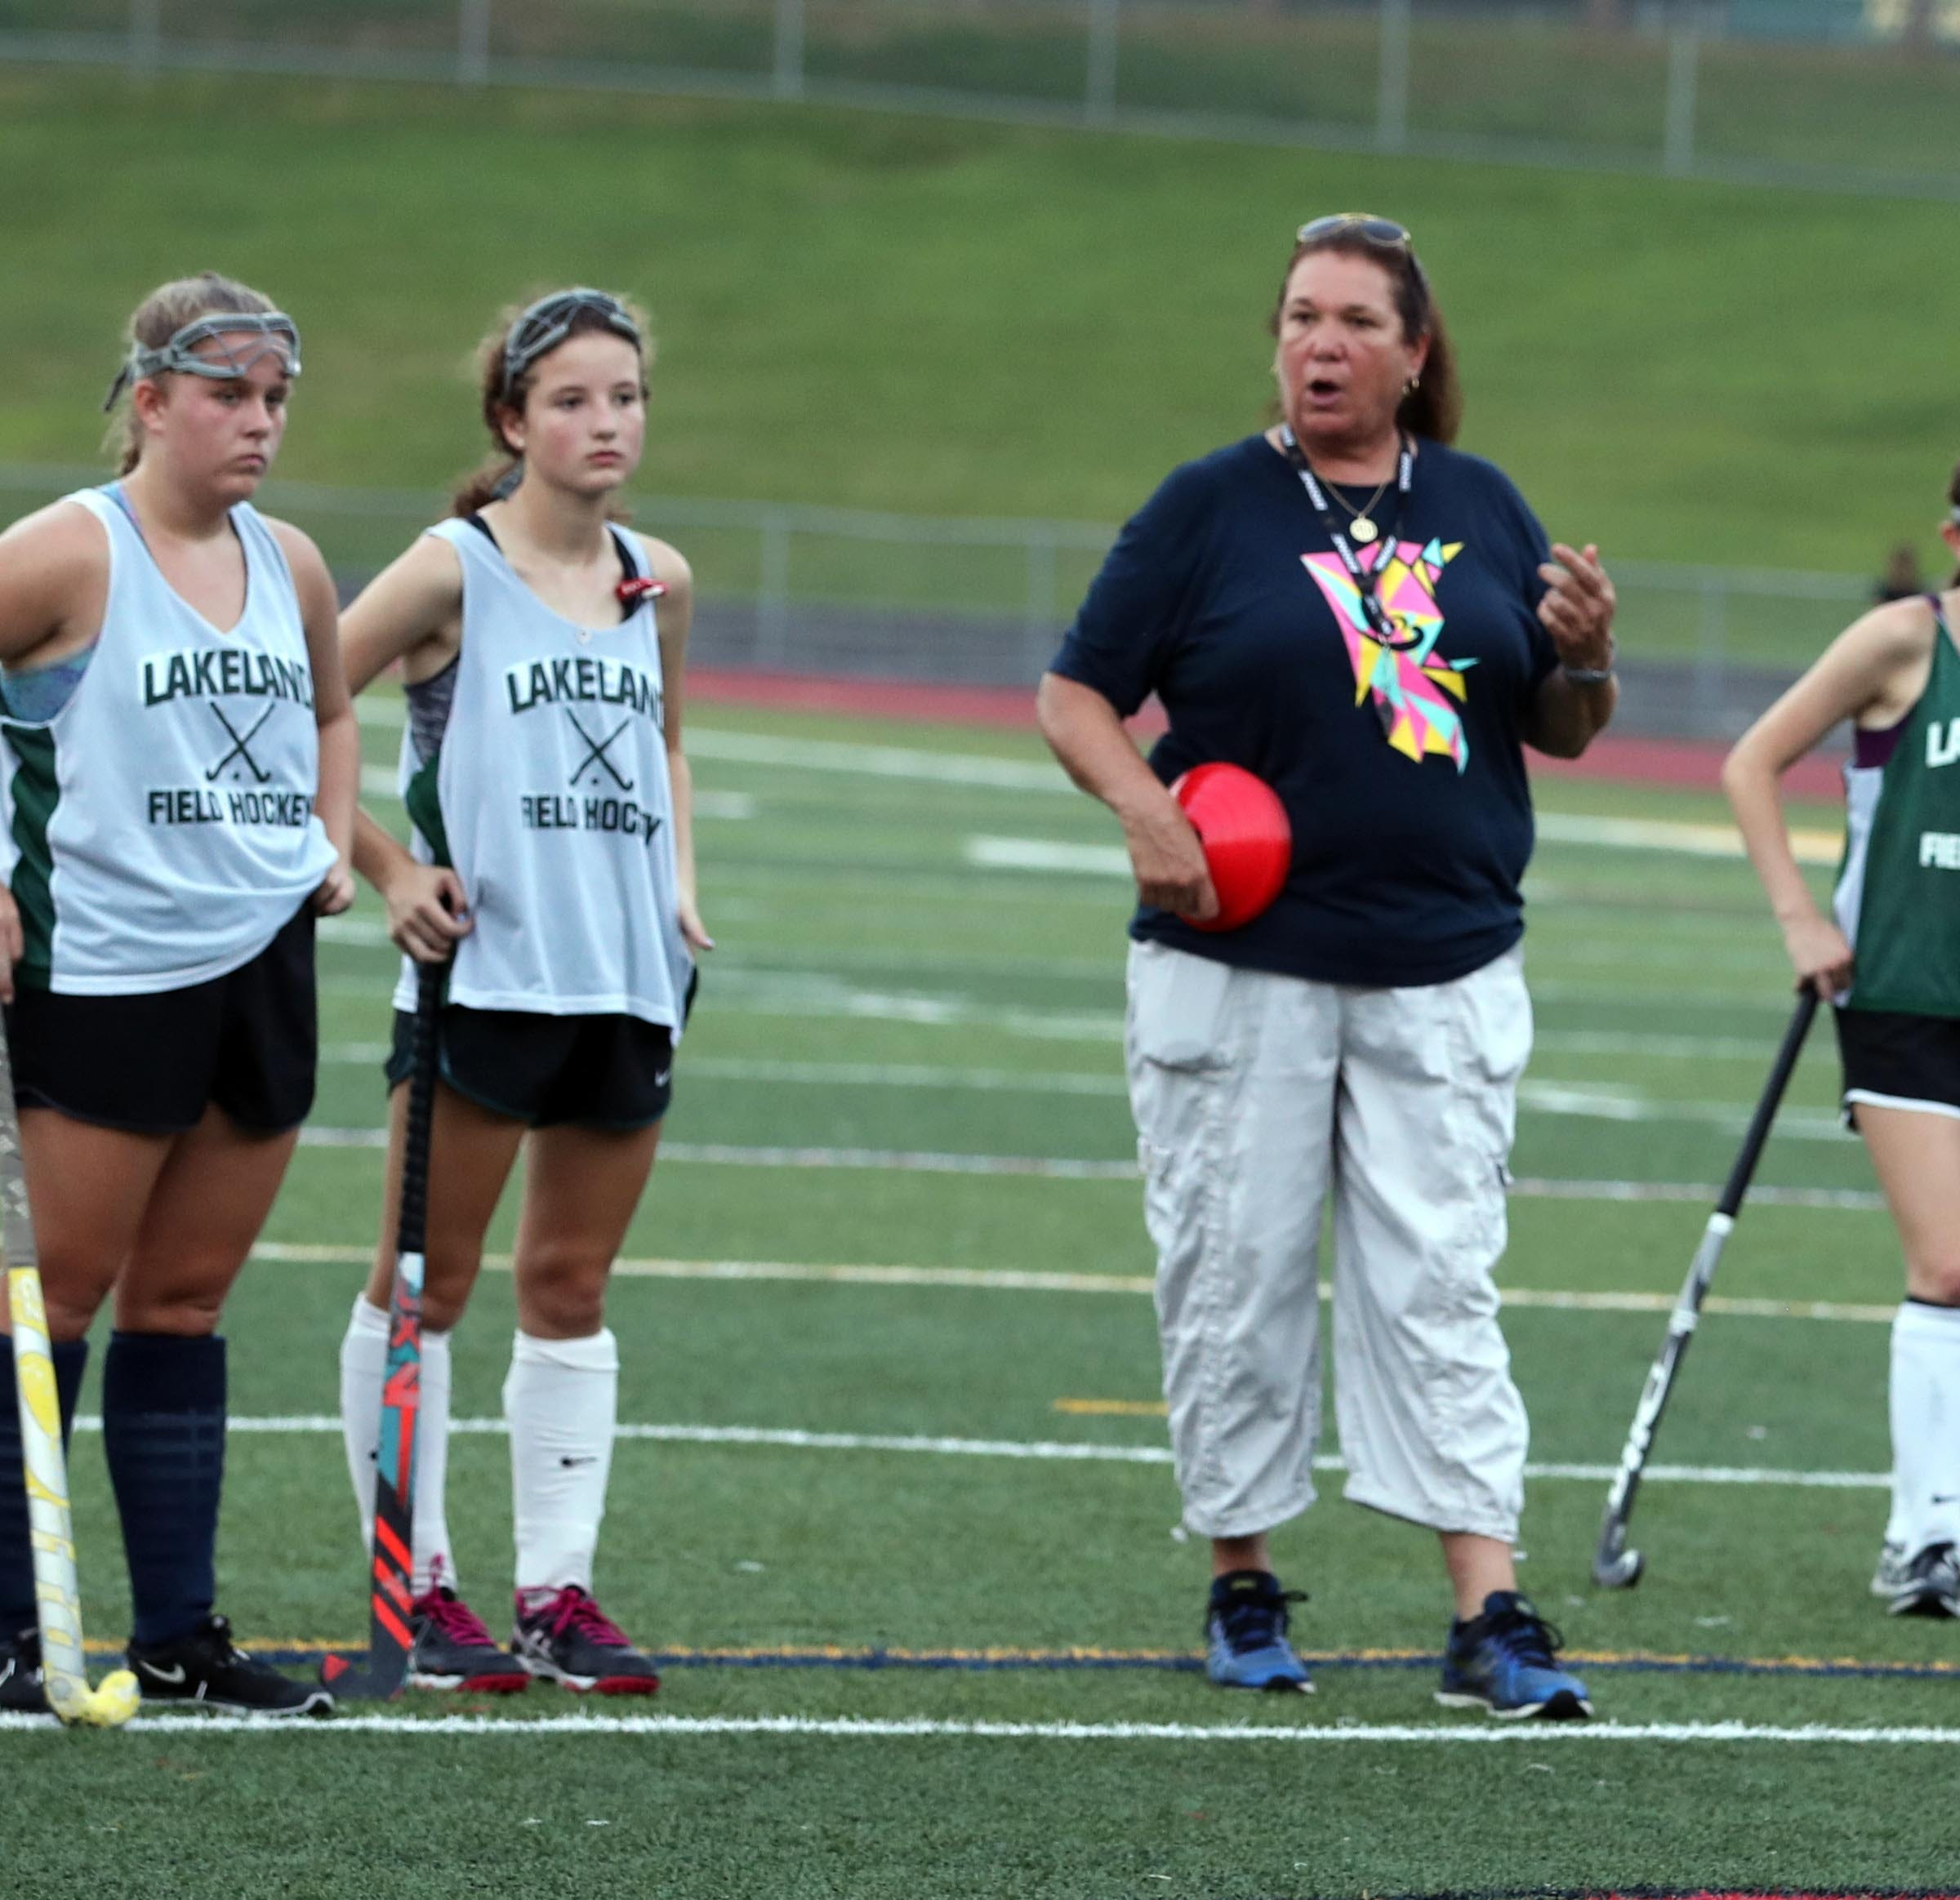 Field hockey: Lakeland's Sarsen named national high school coach of the year